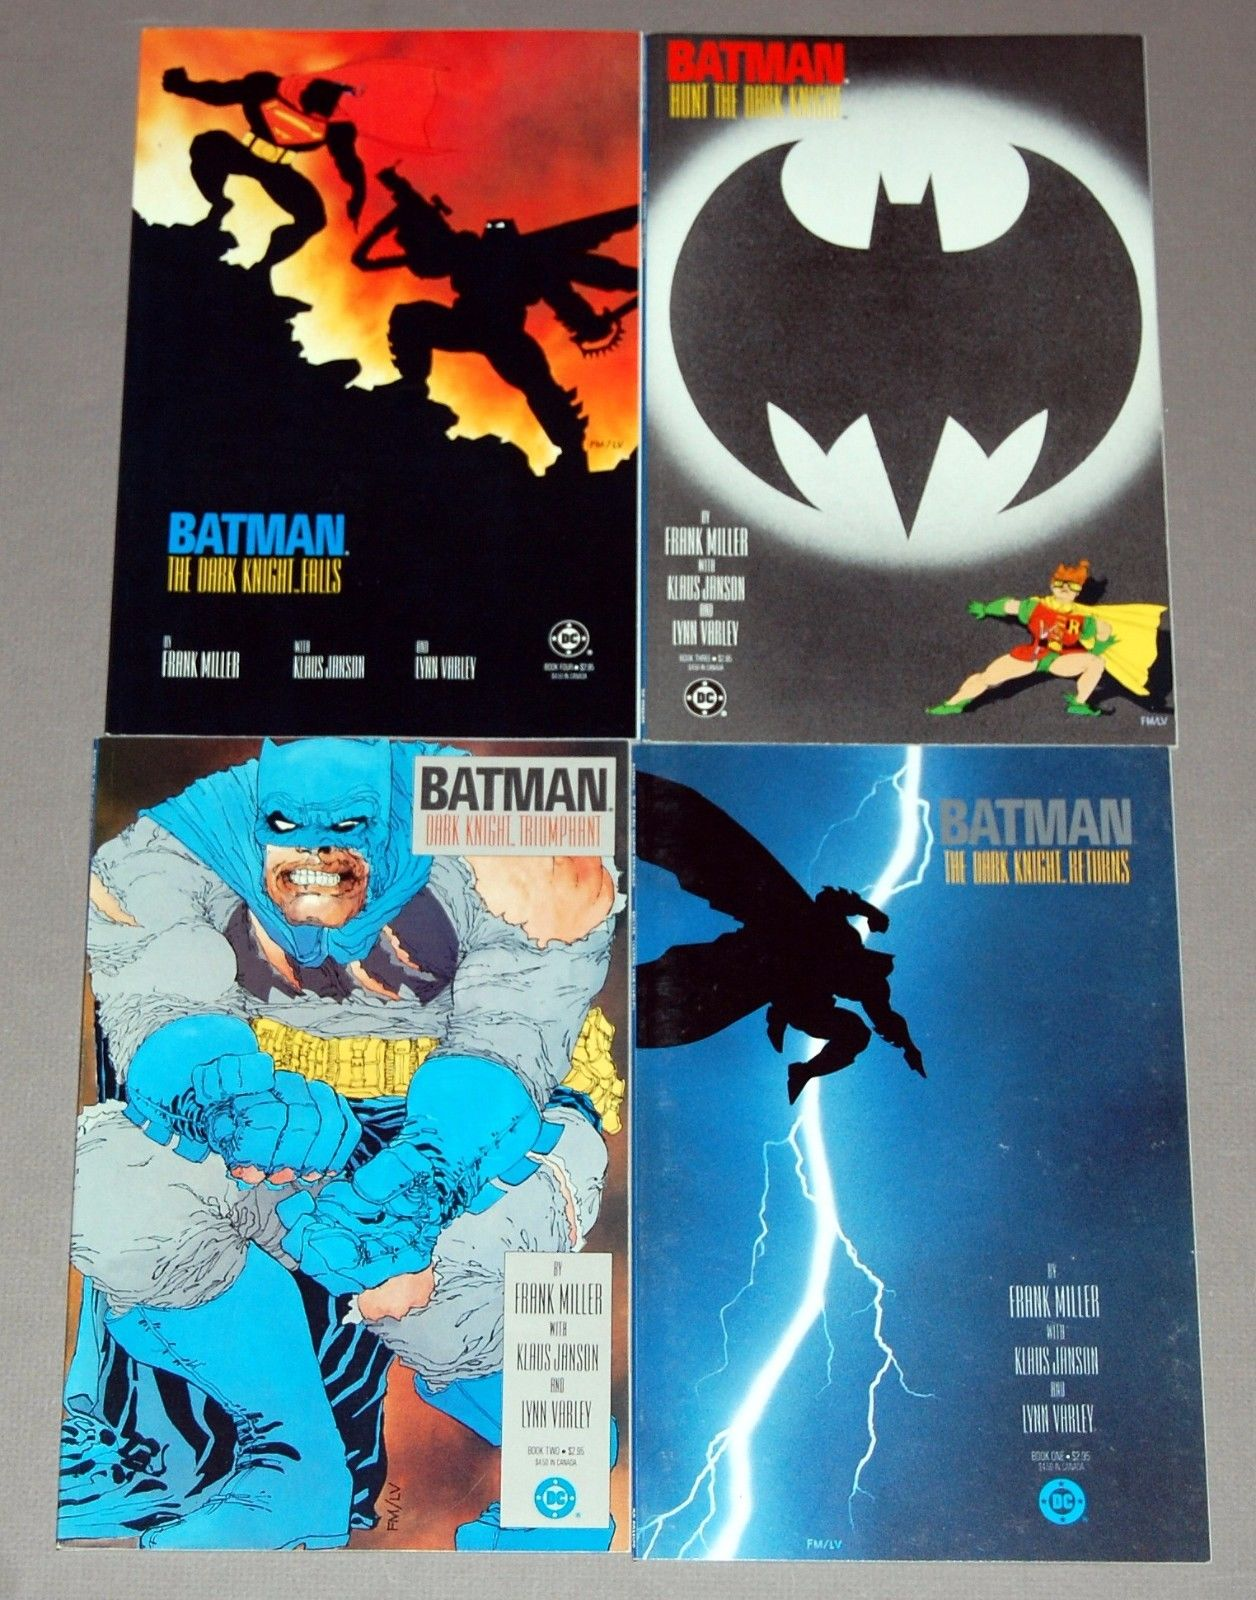 BATMAN The Dark Knight Returns FRANK MILLER #1 2 3 4 Set Graphic Novel TPB Comic